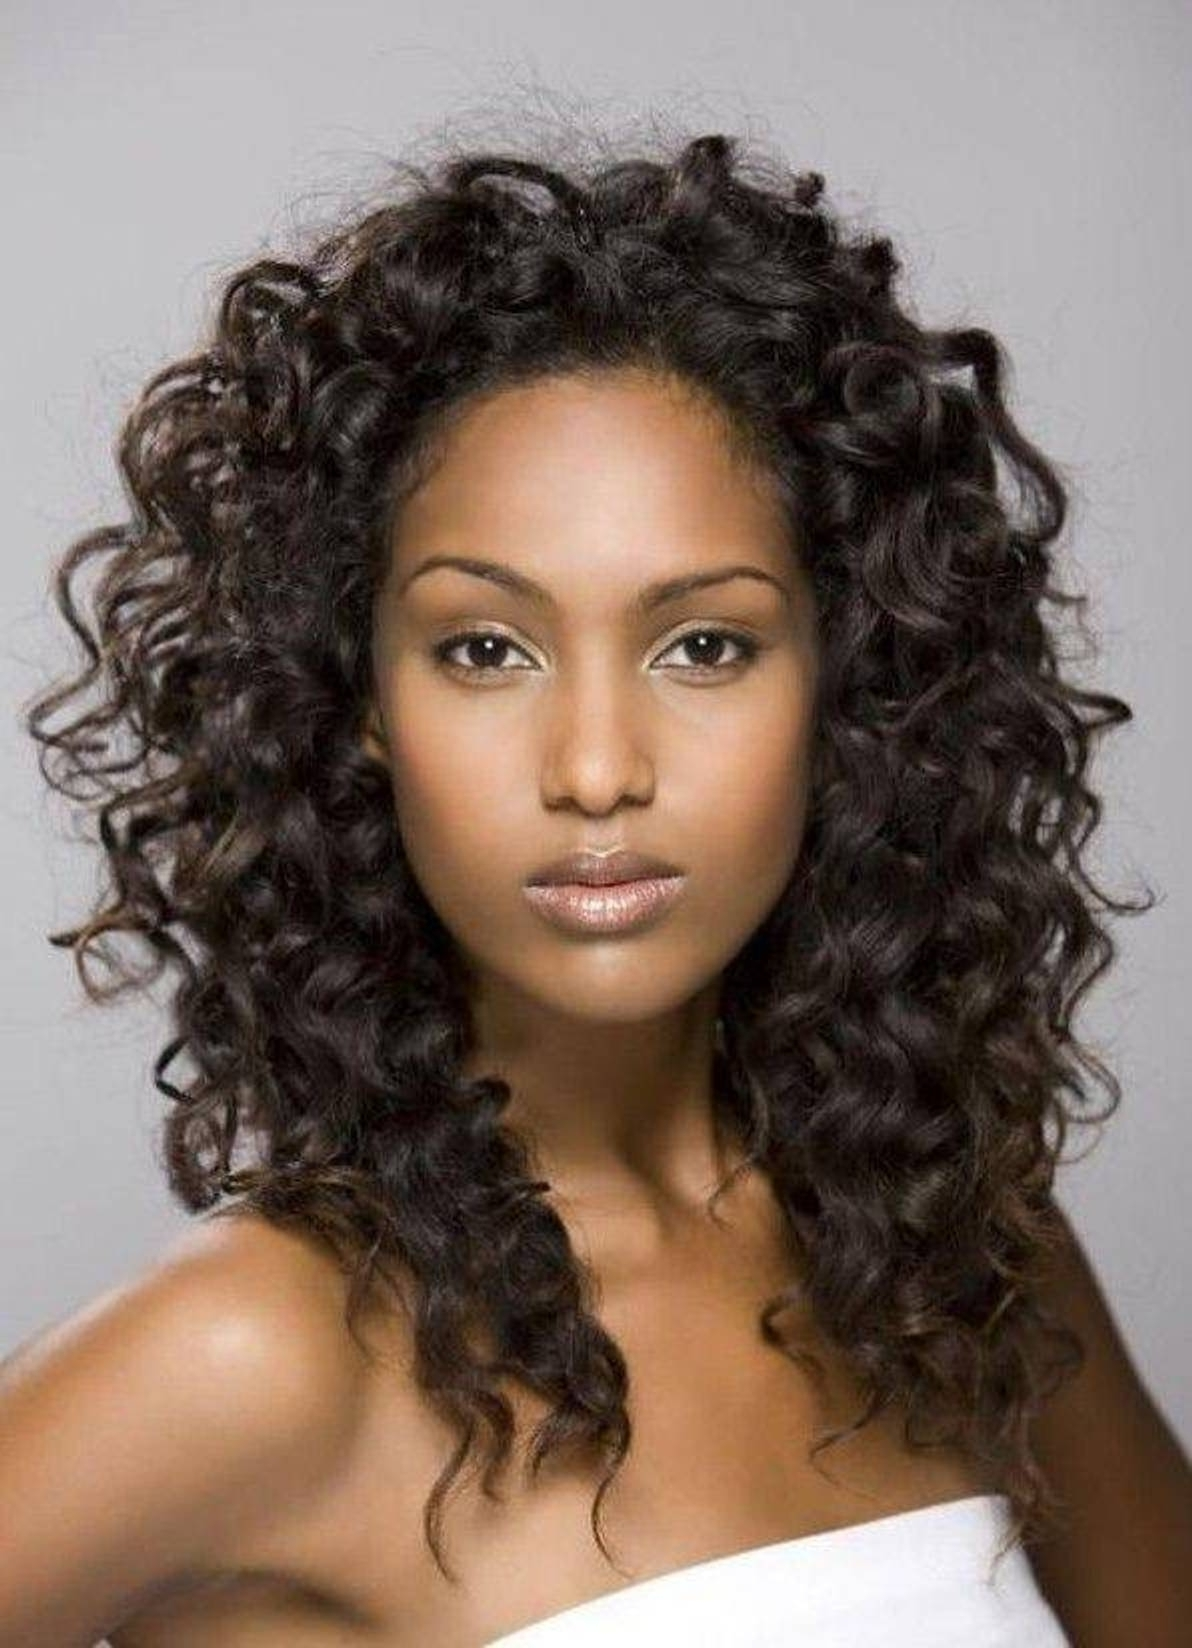 African American Hairstyles Medium Length Hair – Hairstyle For Women Inside Favorite African American Wedding Hairstyles For Medium Length Hair (View 8 of 15)